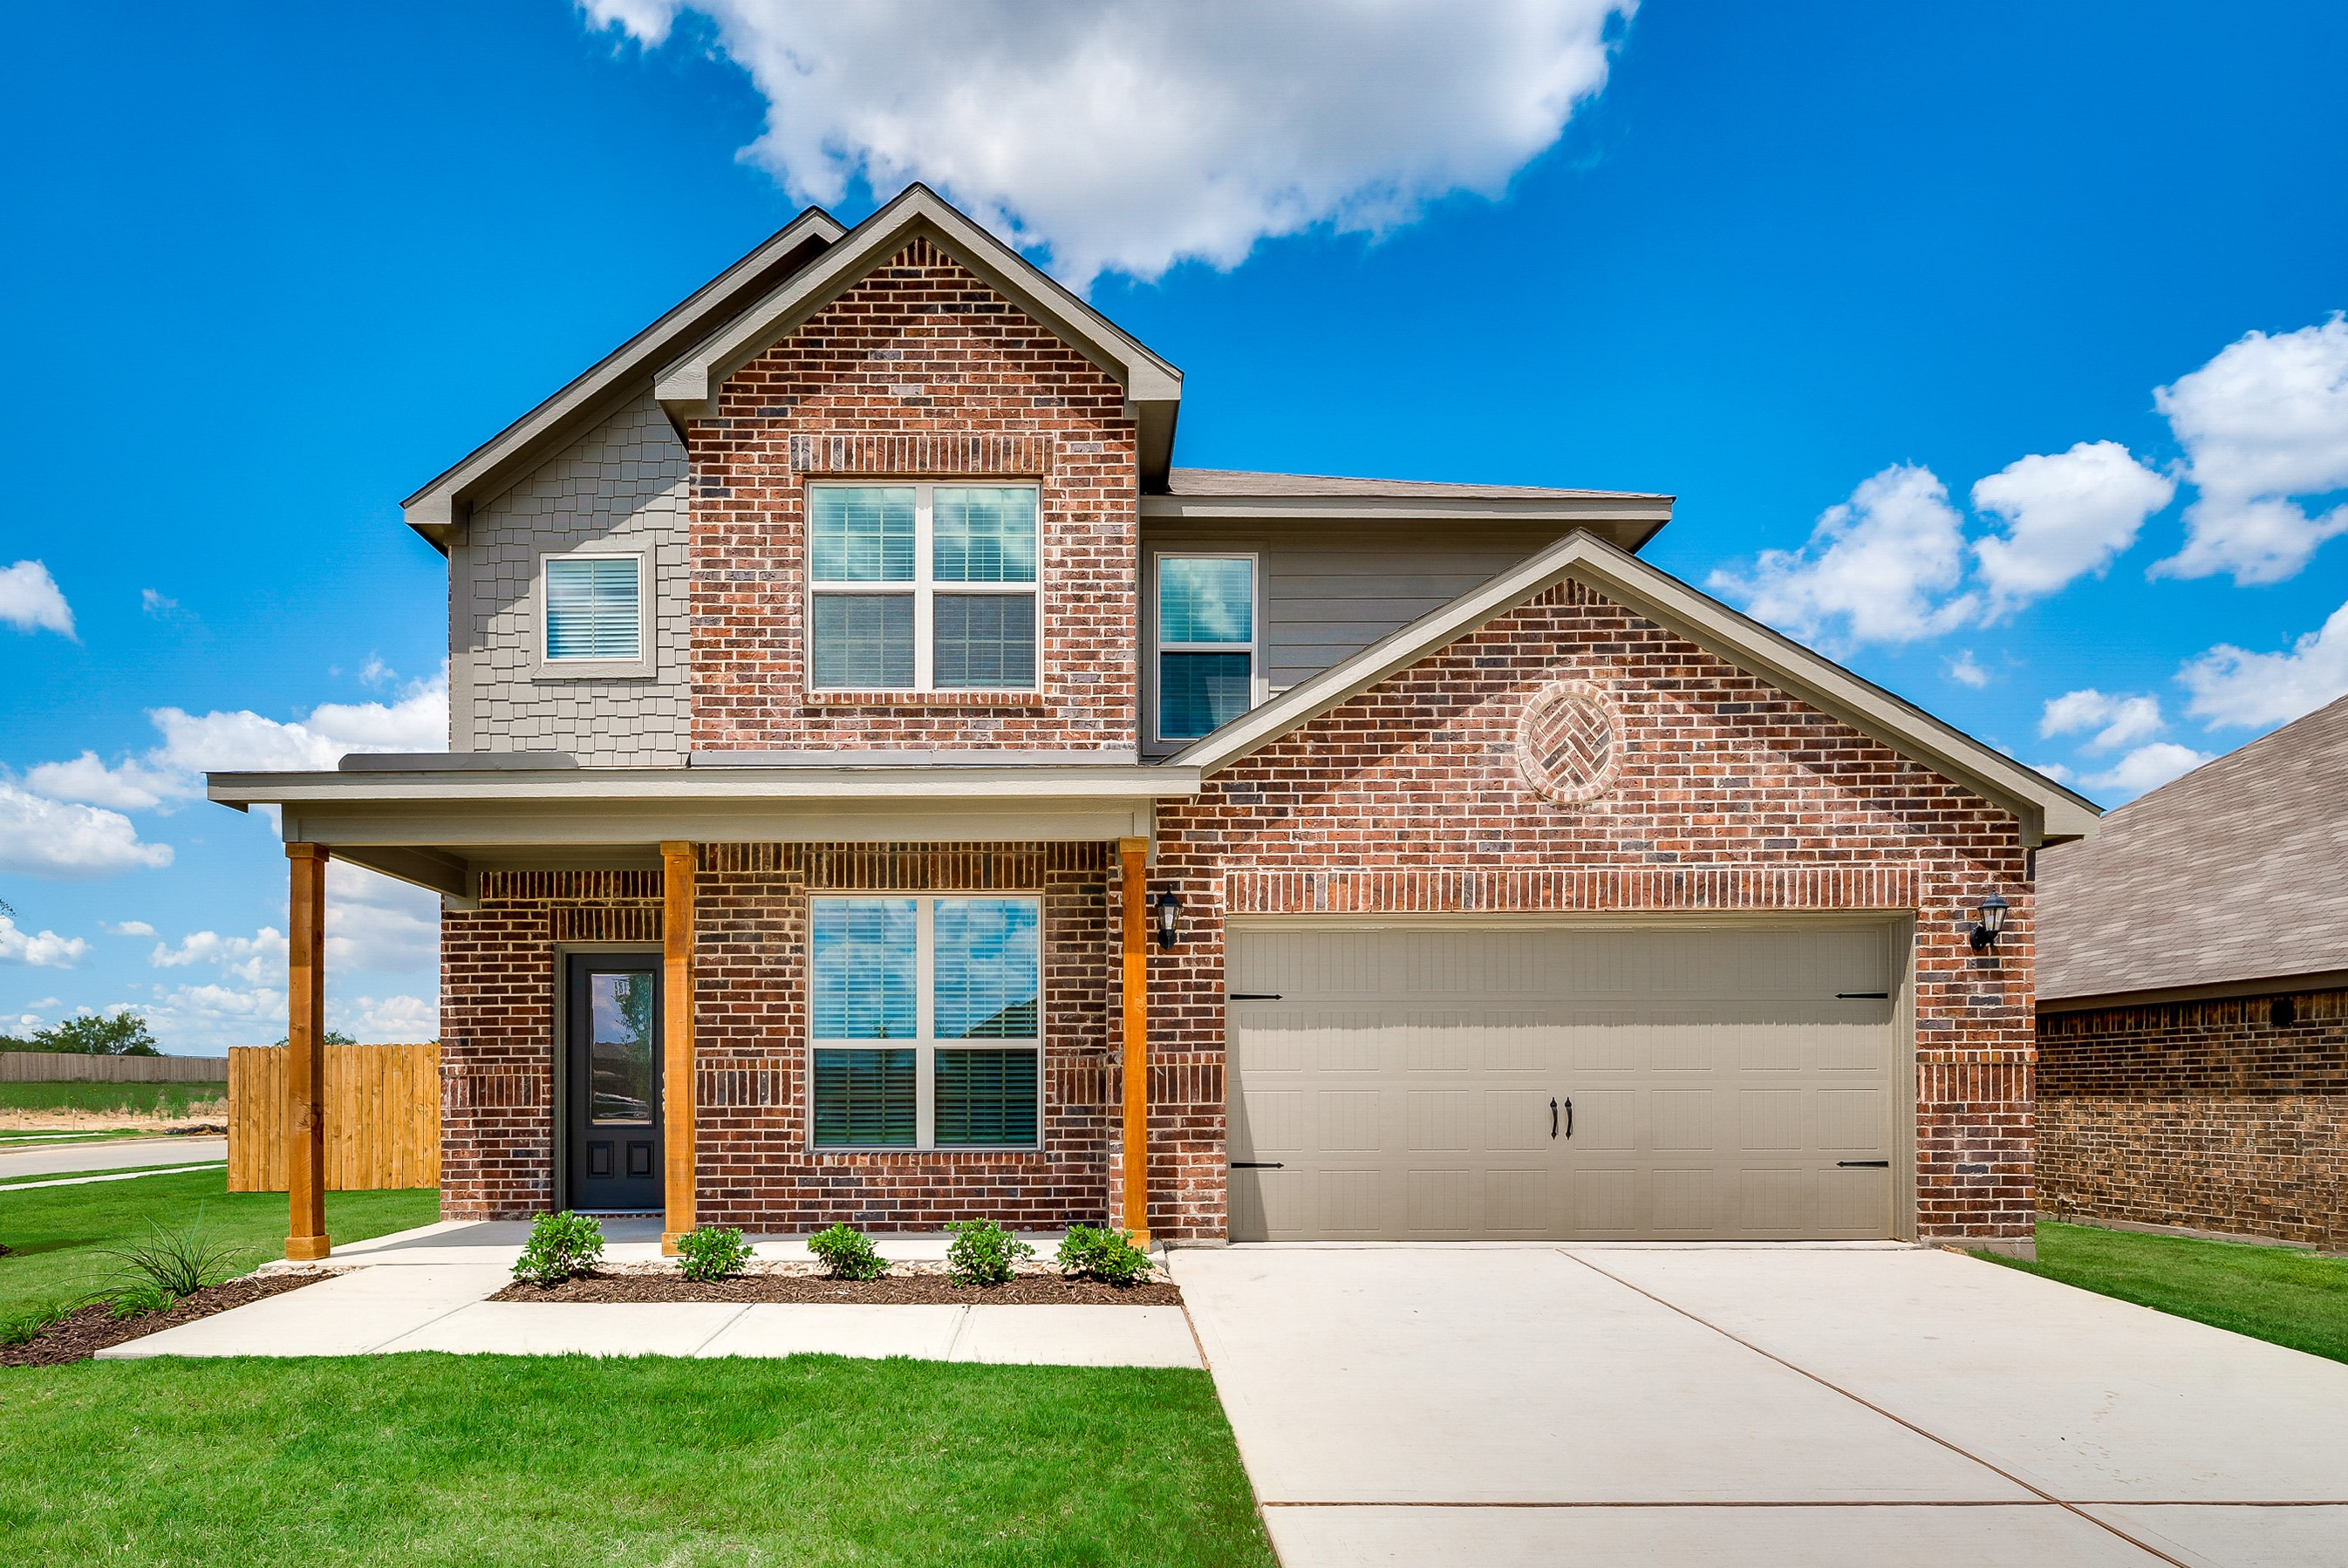 The Superior plan is a popular two-story home available now at Lasater Ranch in Crowley, Texas.